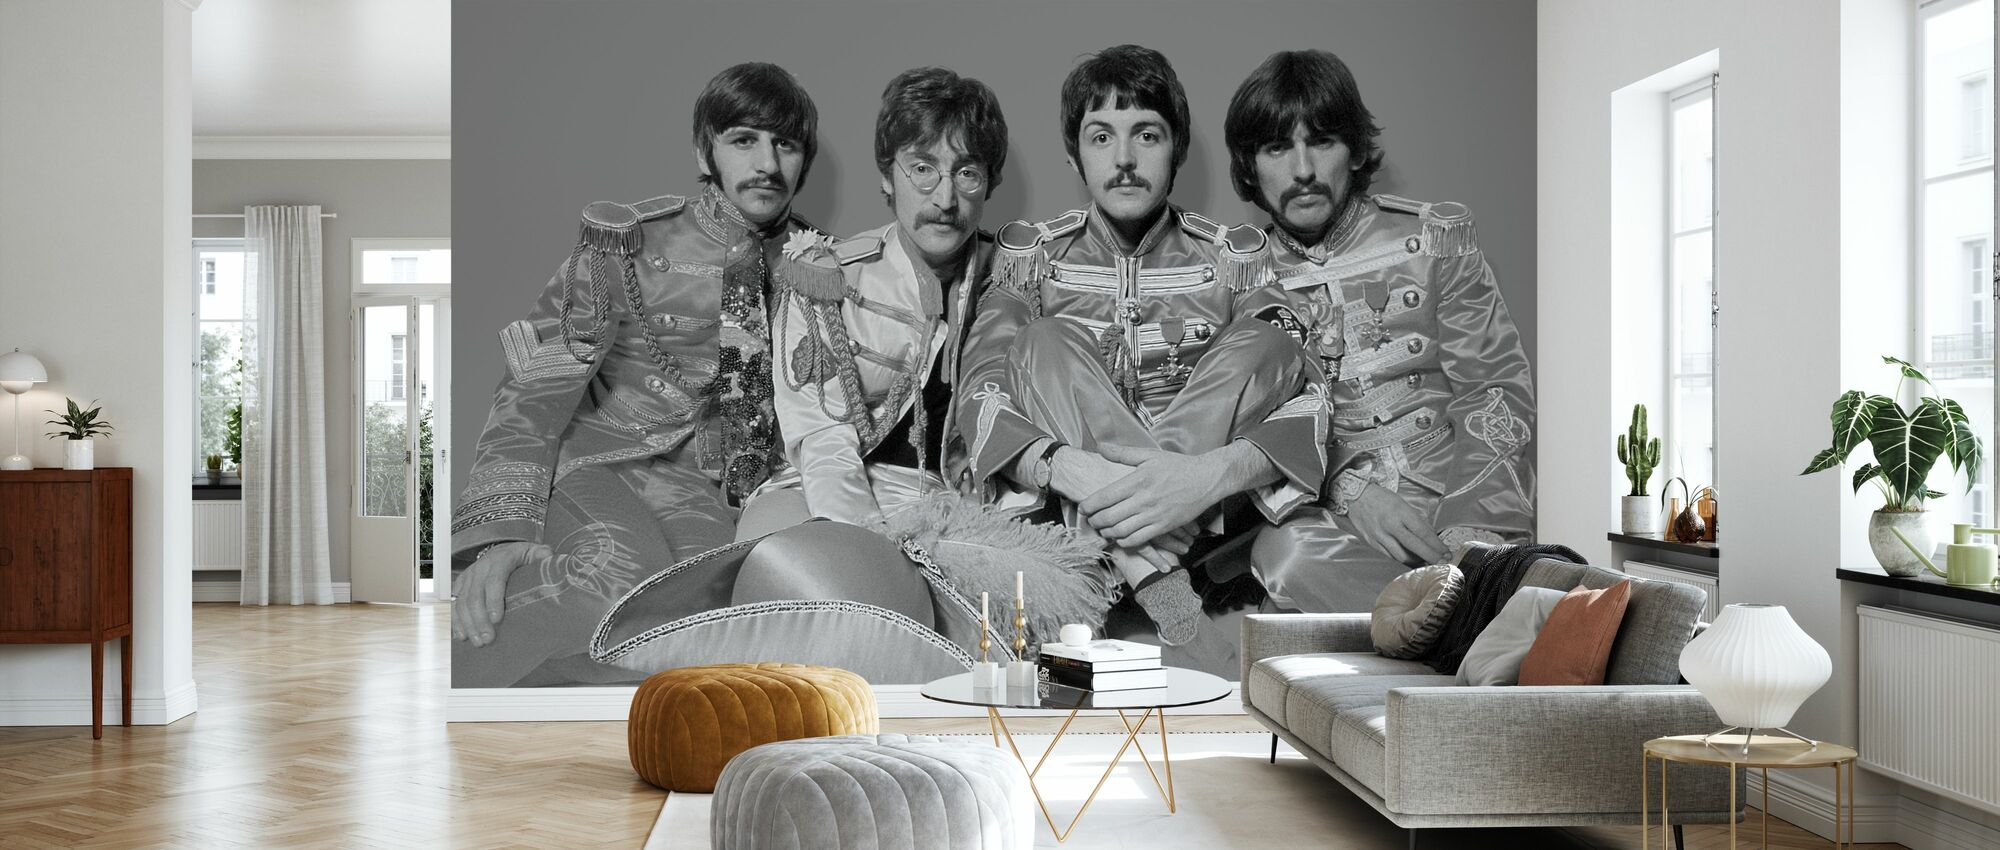 The Beatles - Sgt Peppers Lonely Hearts Club Band Grey - Wallpaper - Living Room